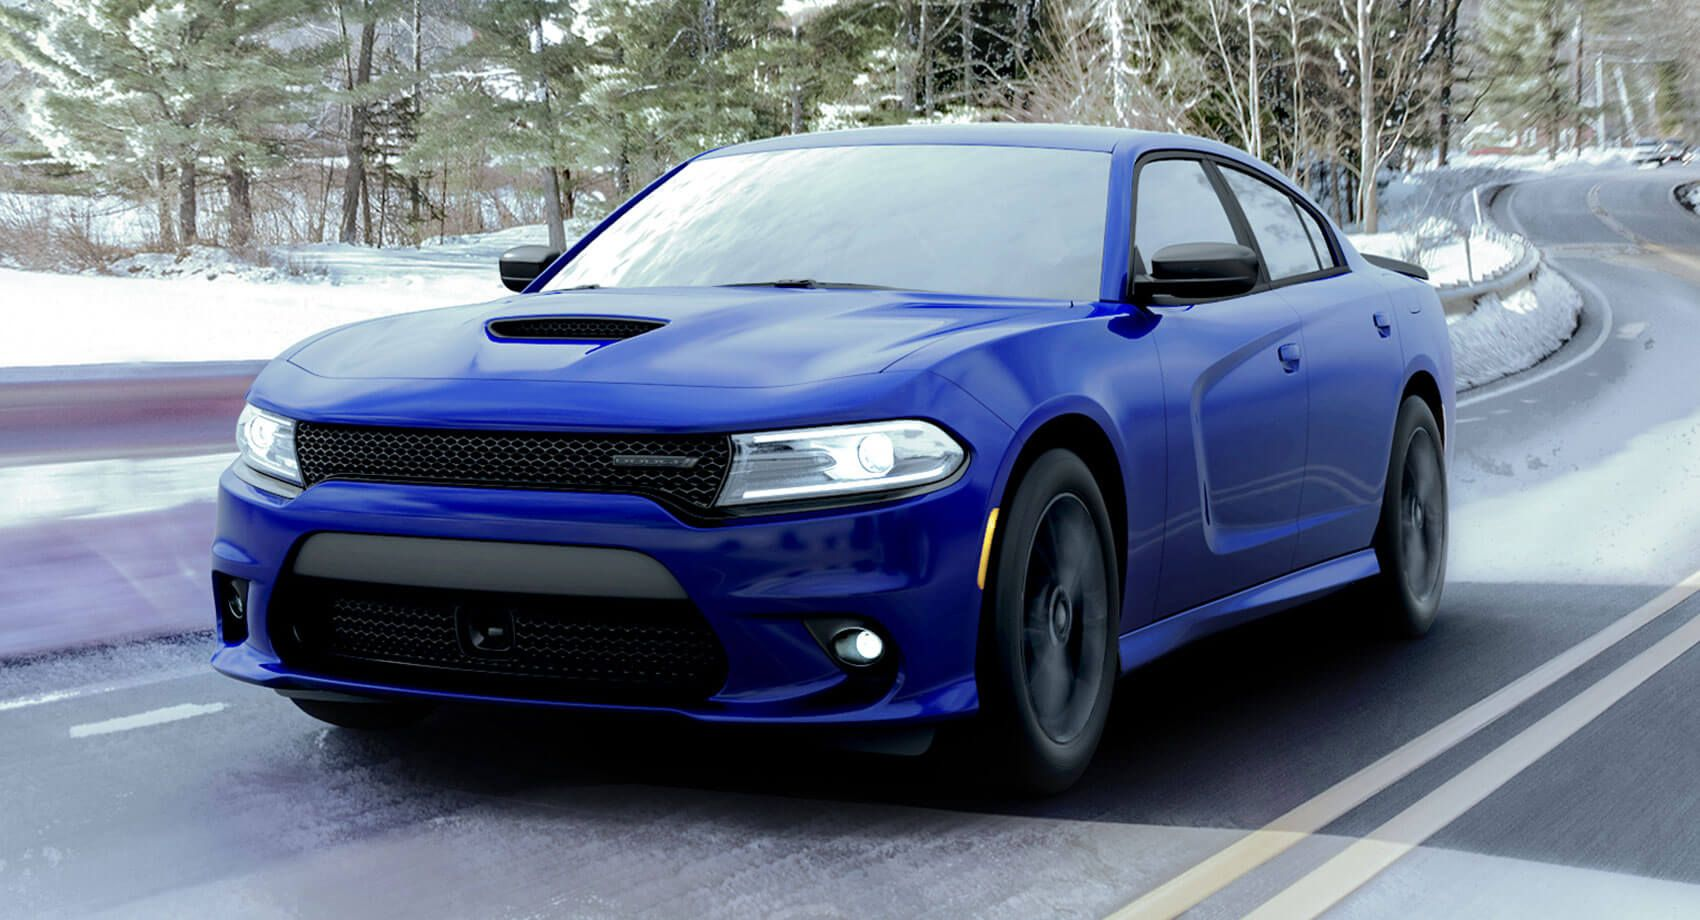 2020 Dodge Charger Gt Gets All Wheel Drive Is Priced From 34 995 Dodge Dodgecharger Newcars Prices Cars Carsofinsta Dodge Charger Dodge Charger Awd Awd